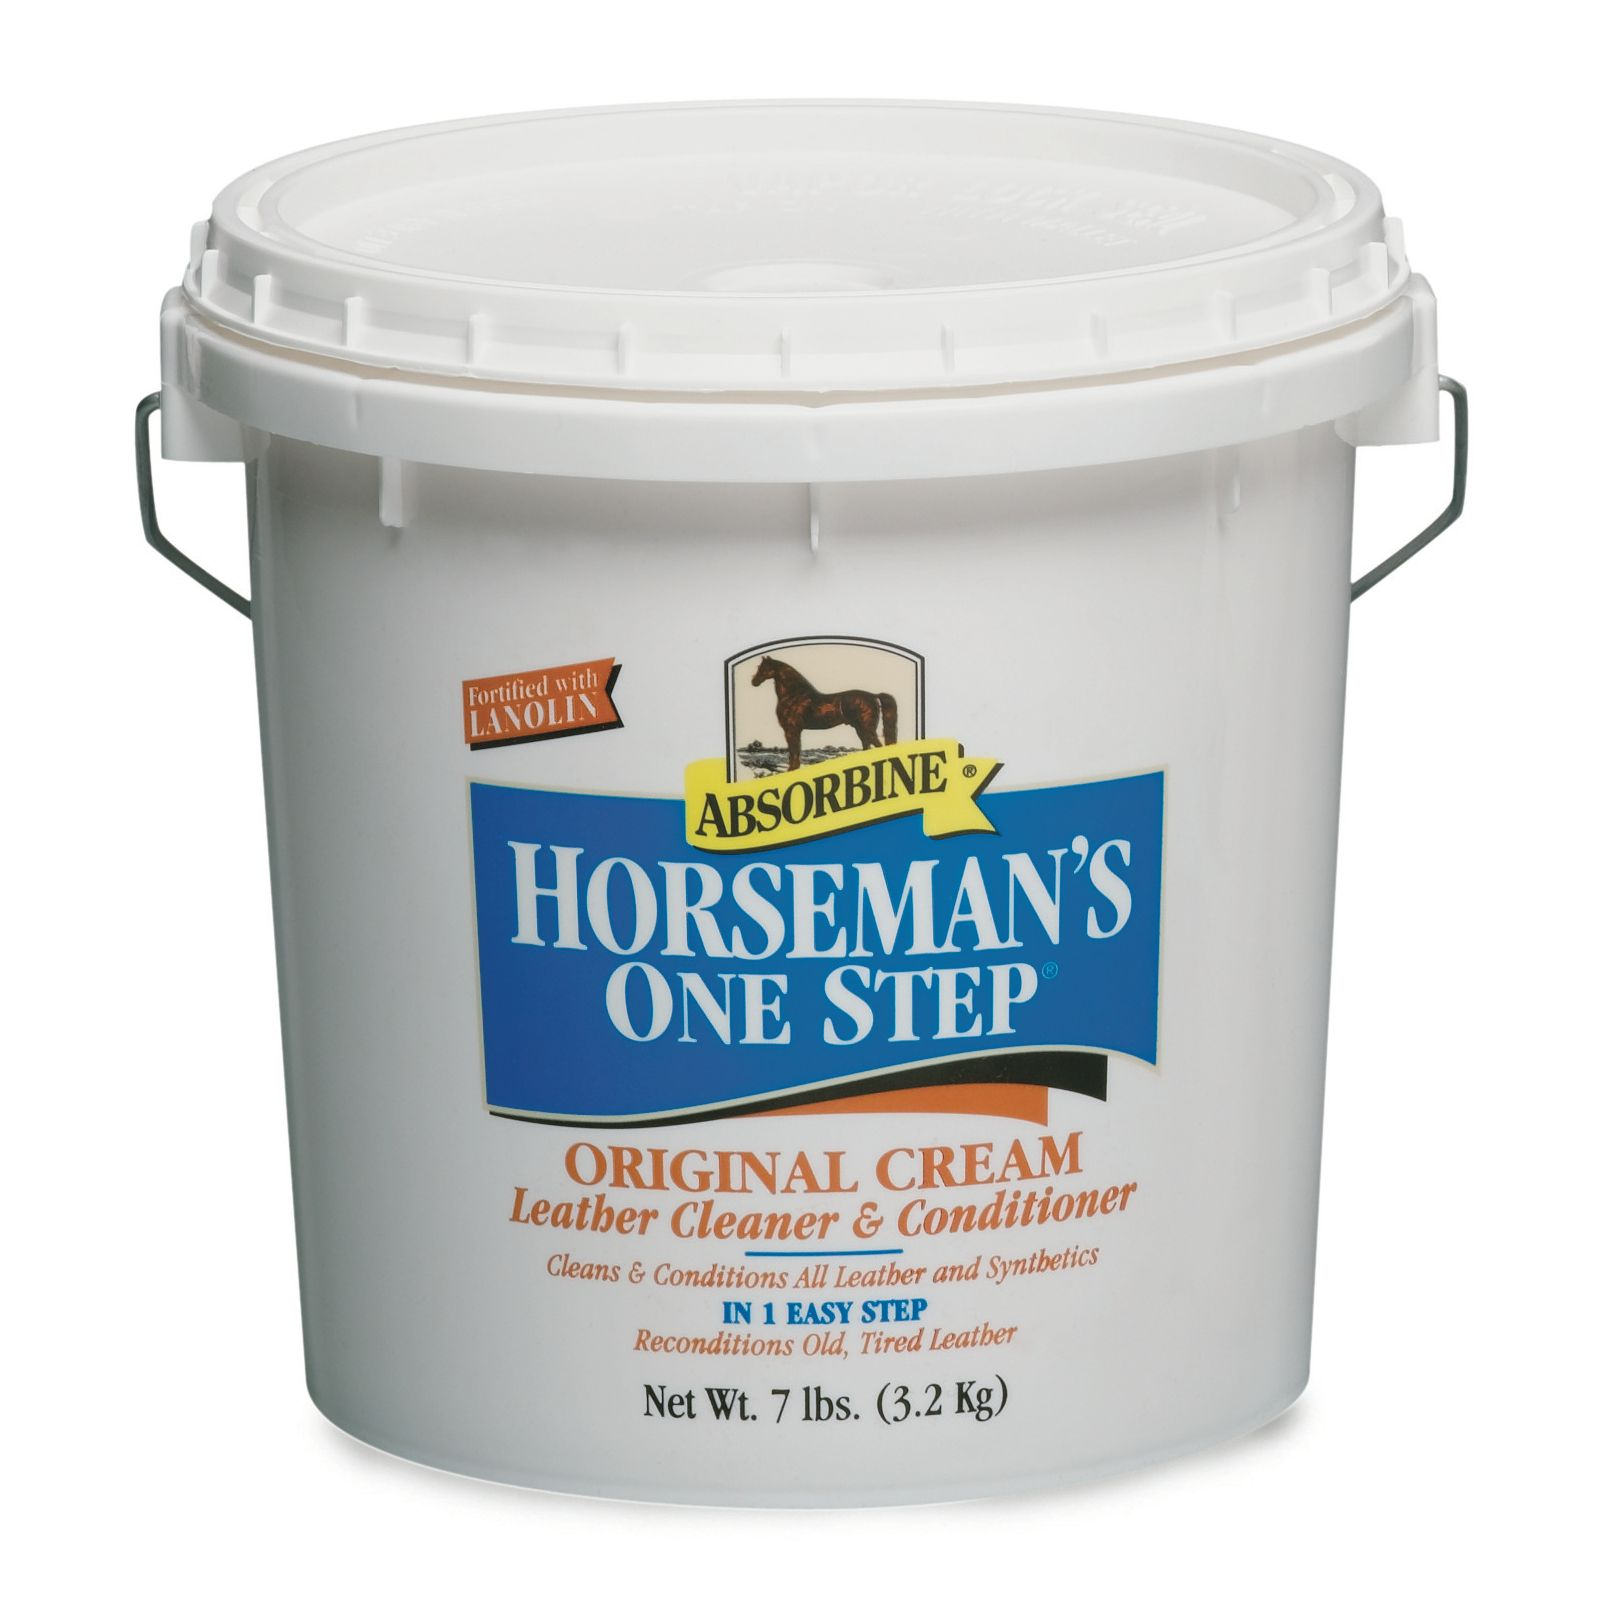 Absorbine Horseman's One Step Cream 3.2 kg